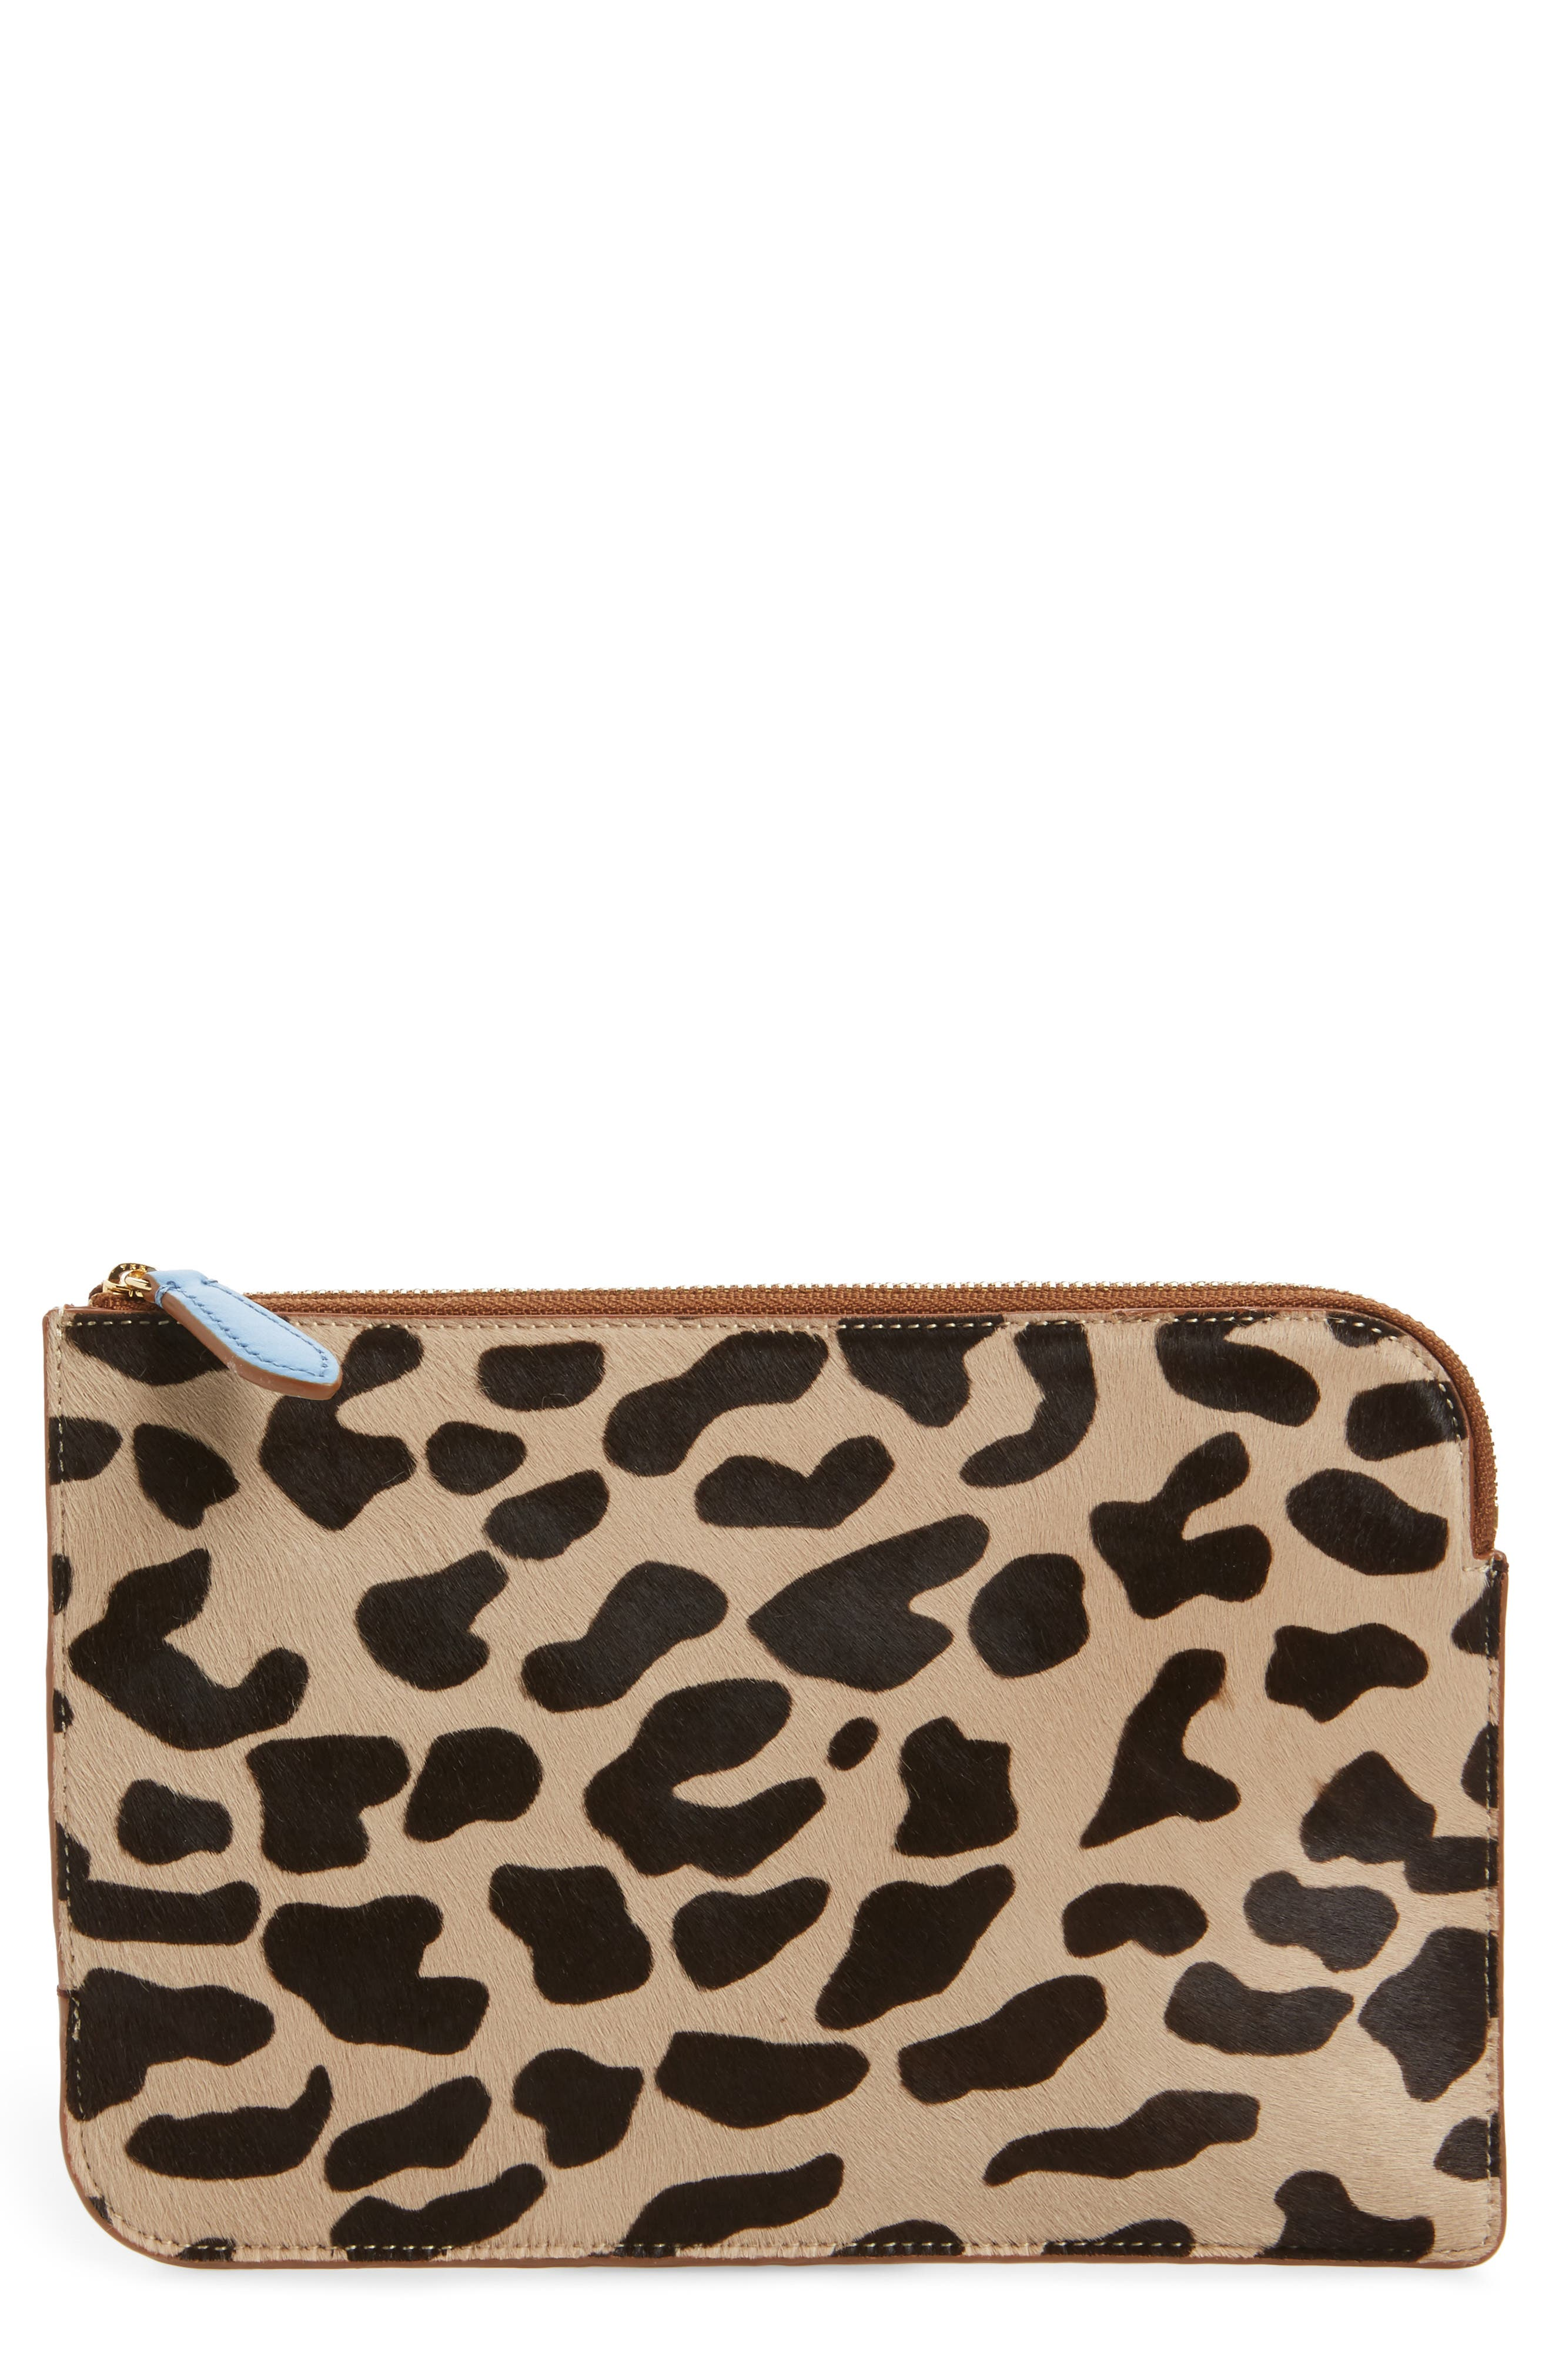 Diane von Furstenberg Medium Genuine Calf Hair & Leather Zip Pouch